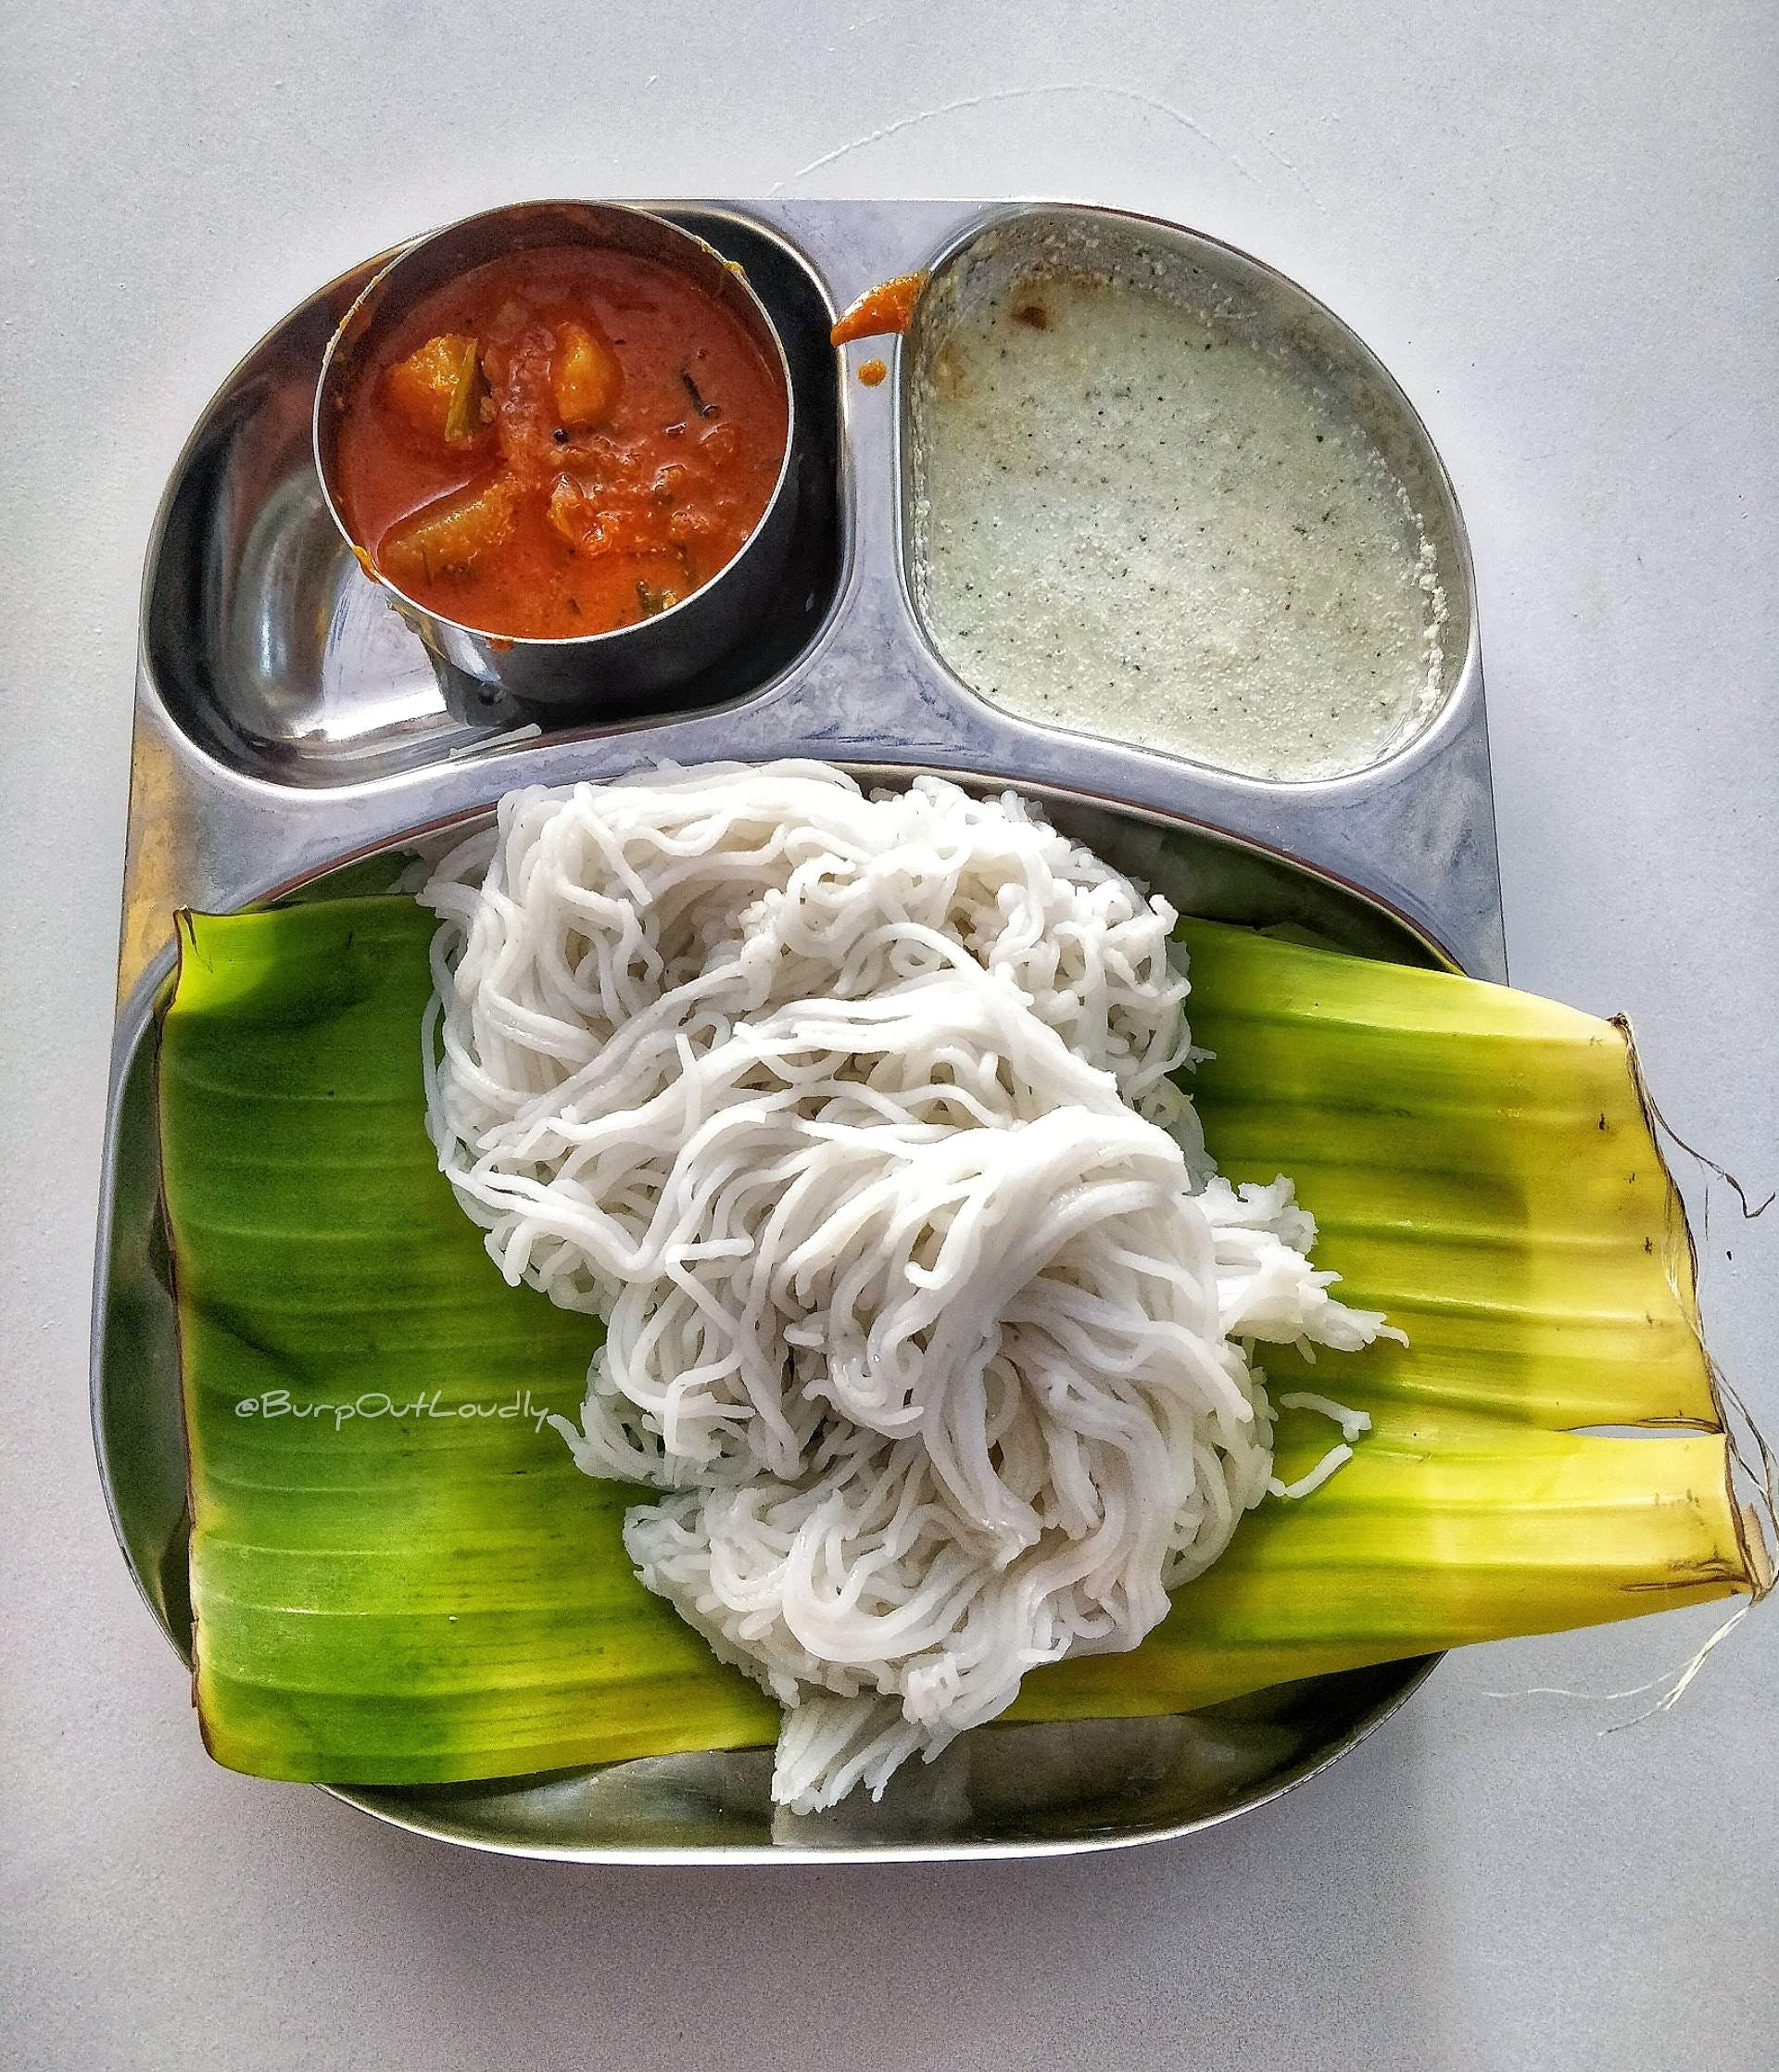 Authentic Konkani Cuisine Made With Love